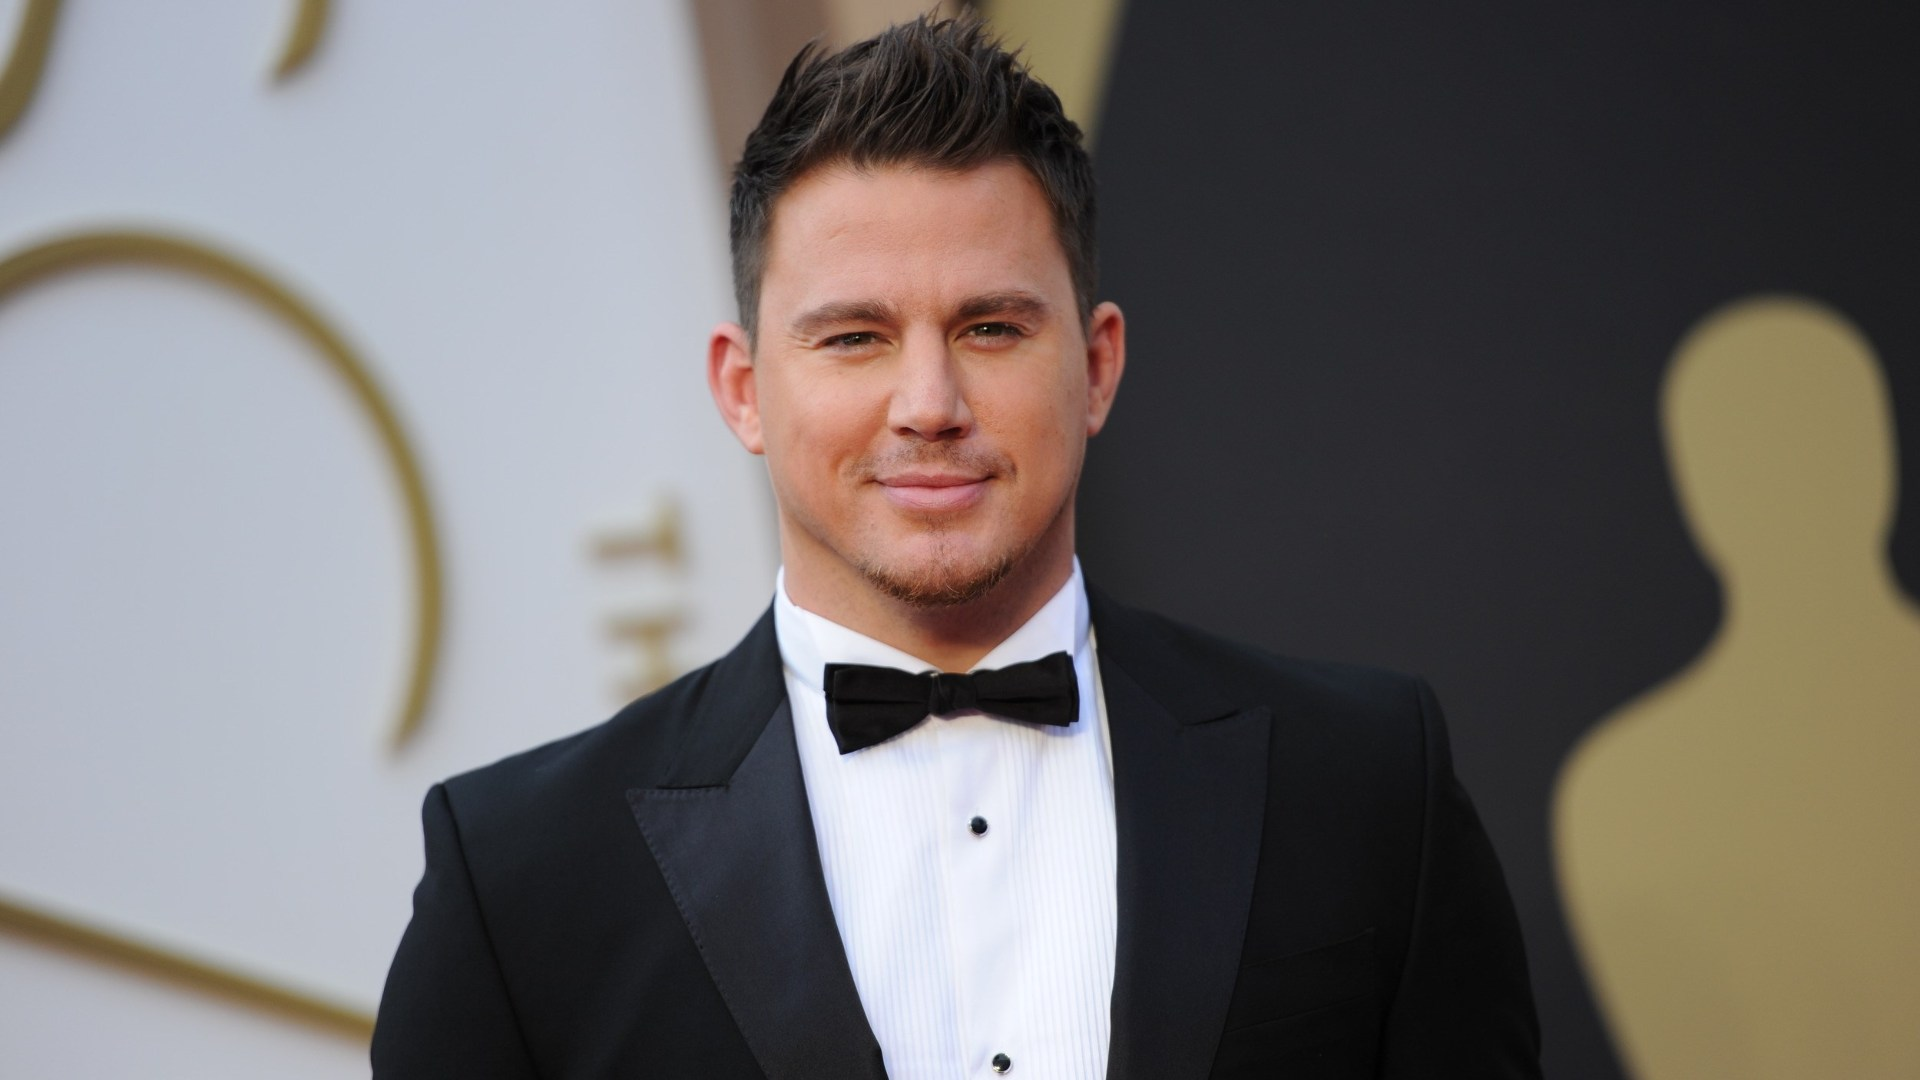 Channing-Tatum-Haircut-hollywood-hairstyles-2017-actor-celebrity-best-sexiest